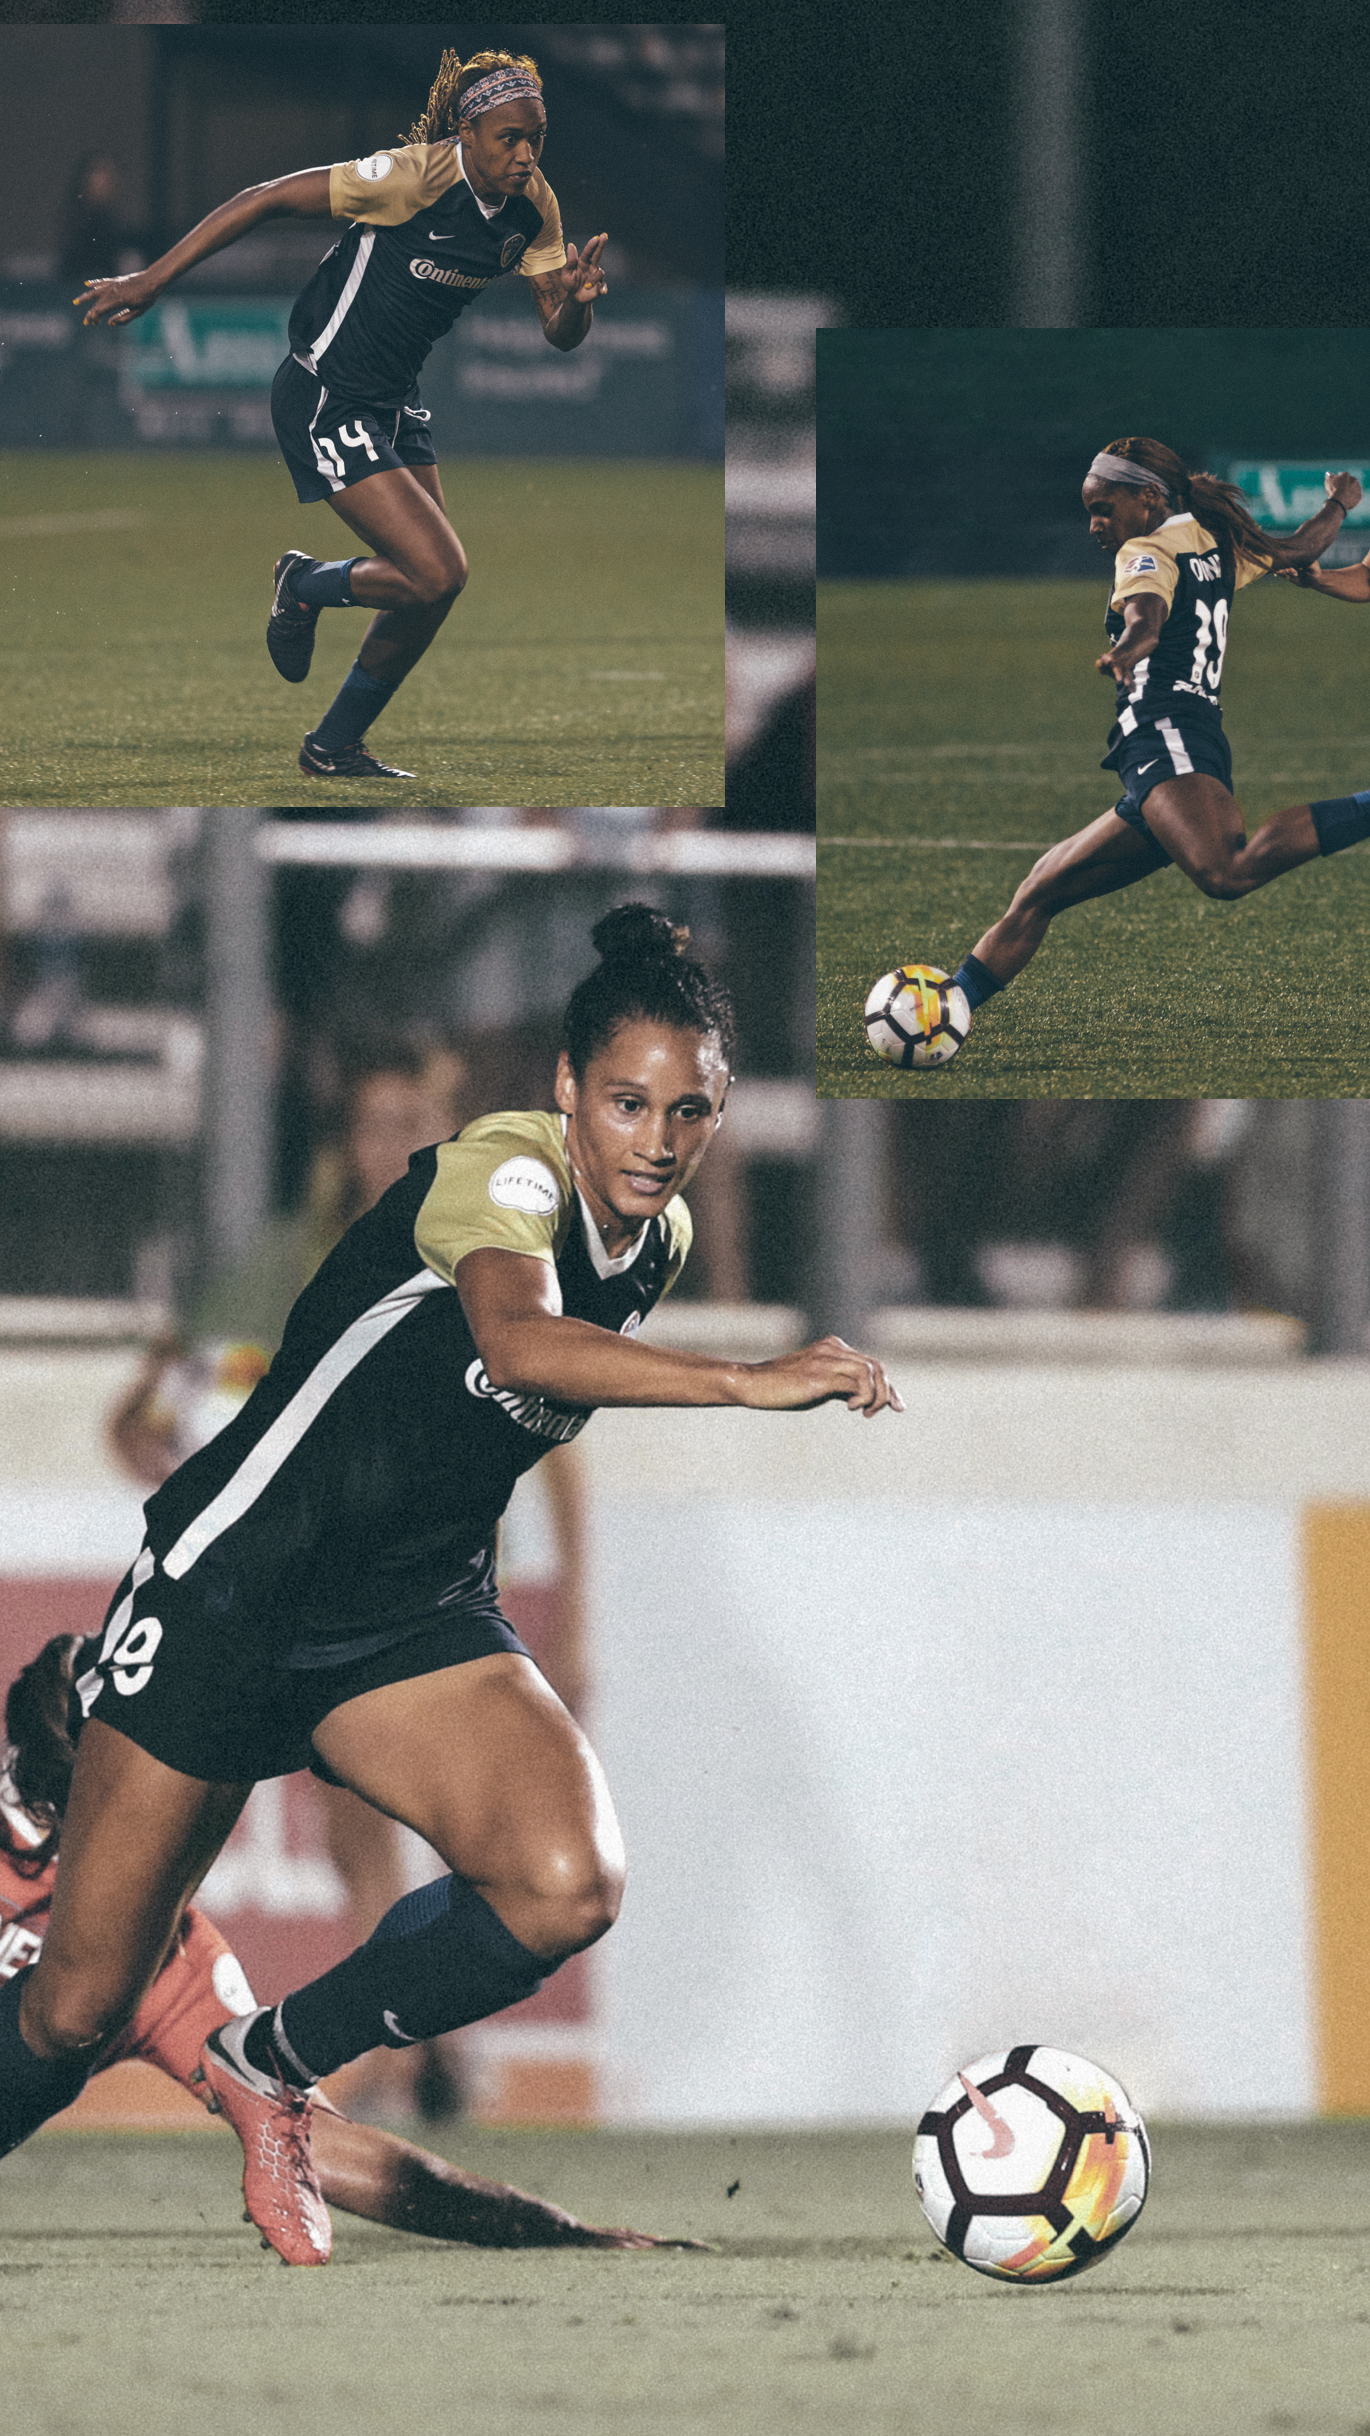 NIKE-NWSL-IG-STORY-14.png